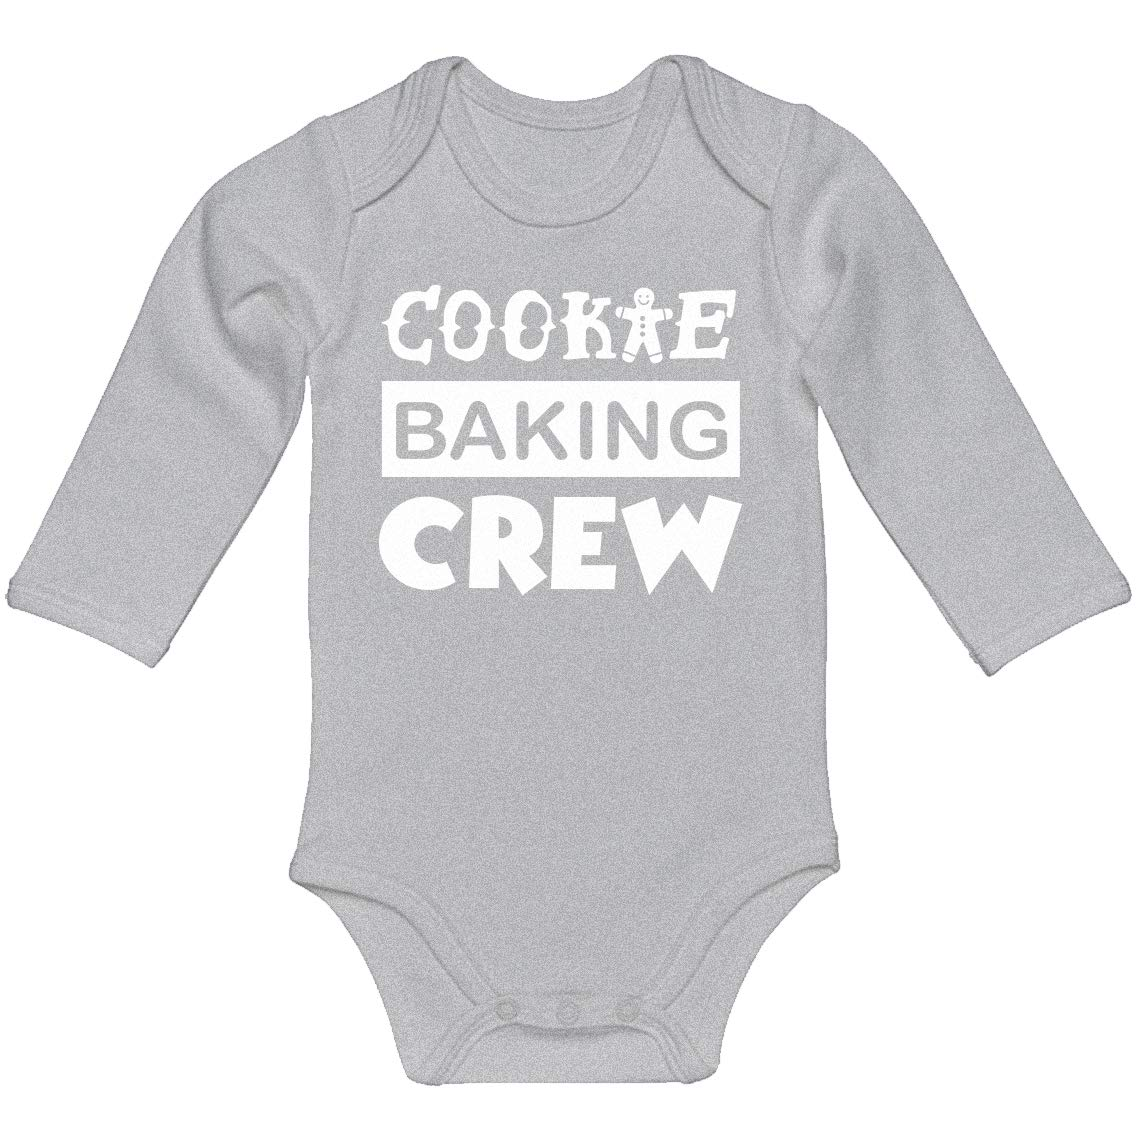 Indica Plateau Baby Onesie Cookie Baking Crew 100/% Cotton Long Sleeve Infant Bodysuit